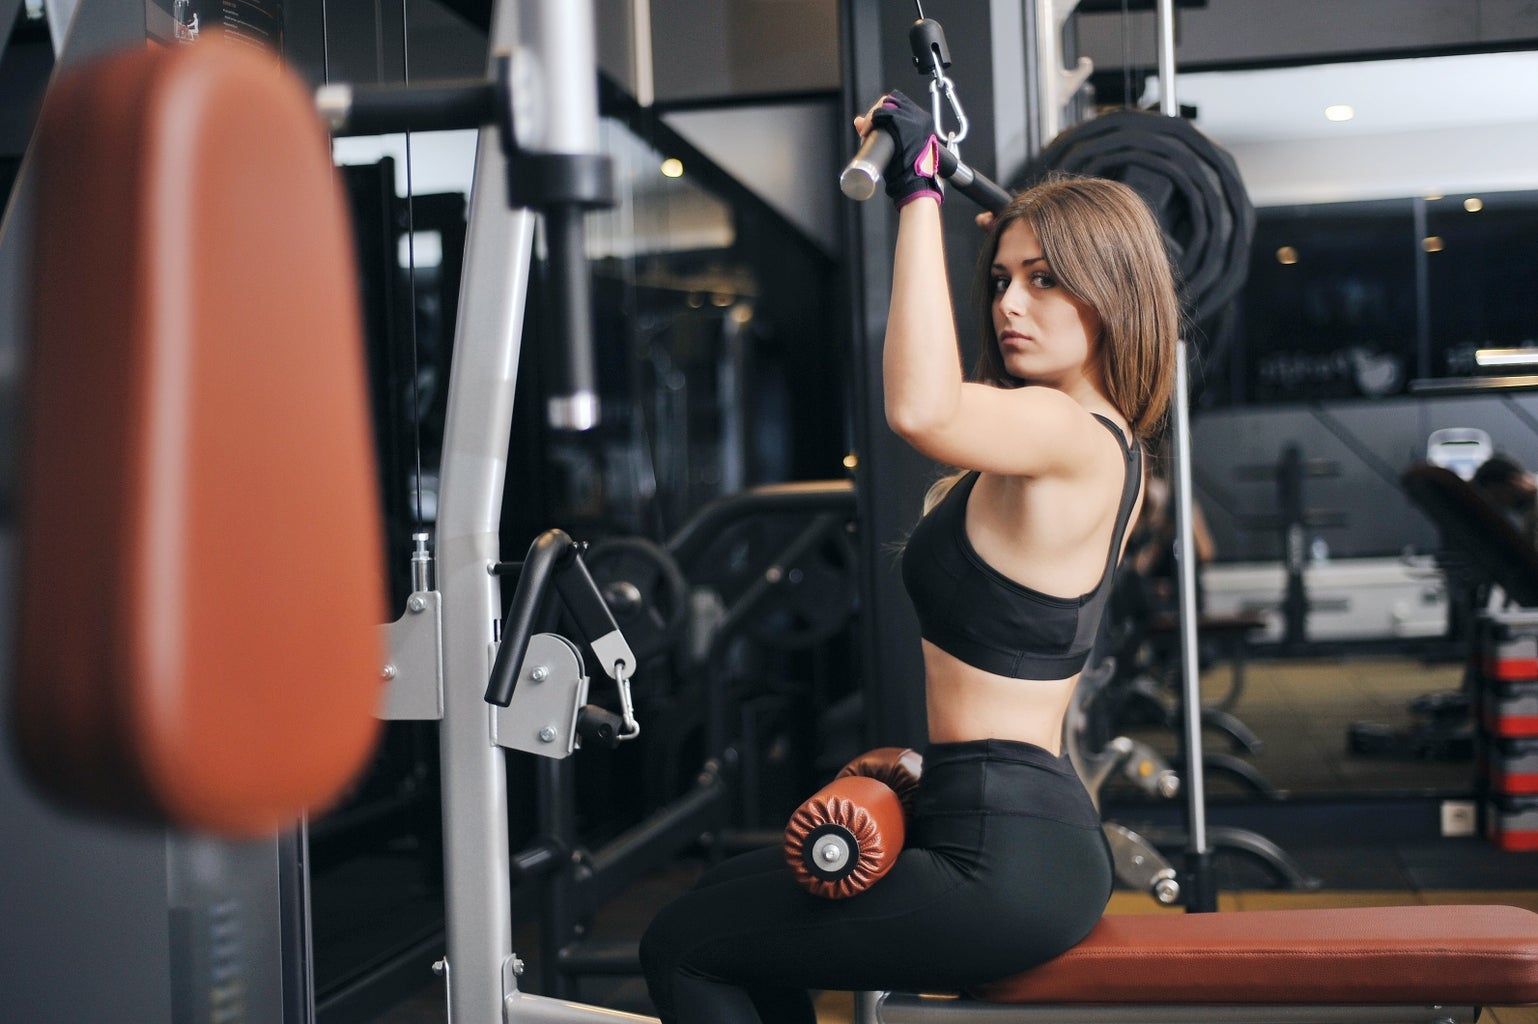 woman doing pulldown exercise